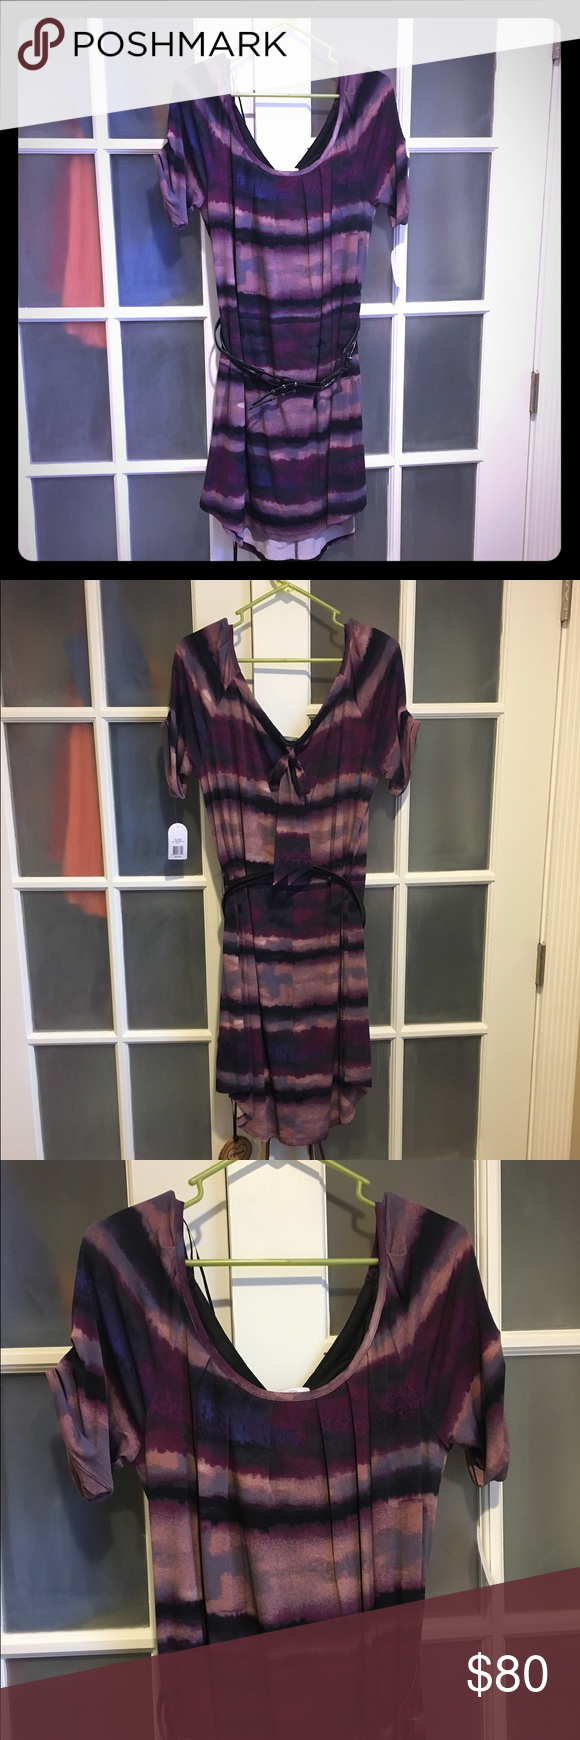 """Jessica Simpson Dress This is a beautiful dress by Jessica Simpson. Tags attached! Light and dark purple swirl design. Attached black belt. U-neck. Short sleeves. Flowy. Back top hem ribbon for design. Inside black lining. Pretty to wear to almost any occasion! No holes or stains. 37"""" long and 17"""" wide. 95% polyester and 5% spandex. Says dry clean only but I'm sure you can wash cold and hang dry. Comes from a smoke free home. **No PayPal and may bundle** **NO TRADES** Jessica Simpson Dresses"""